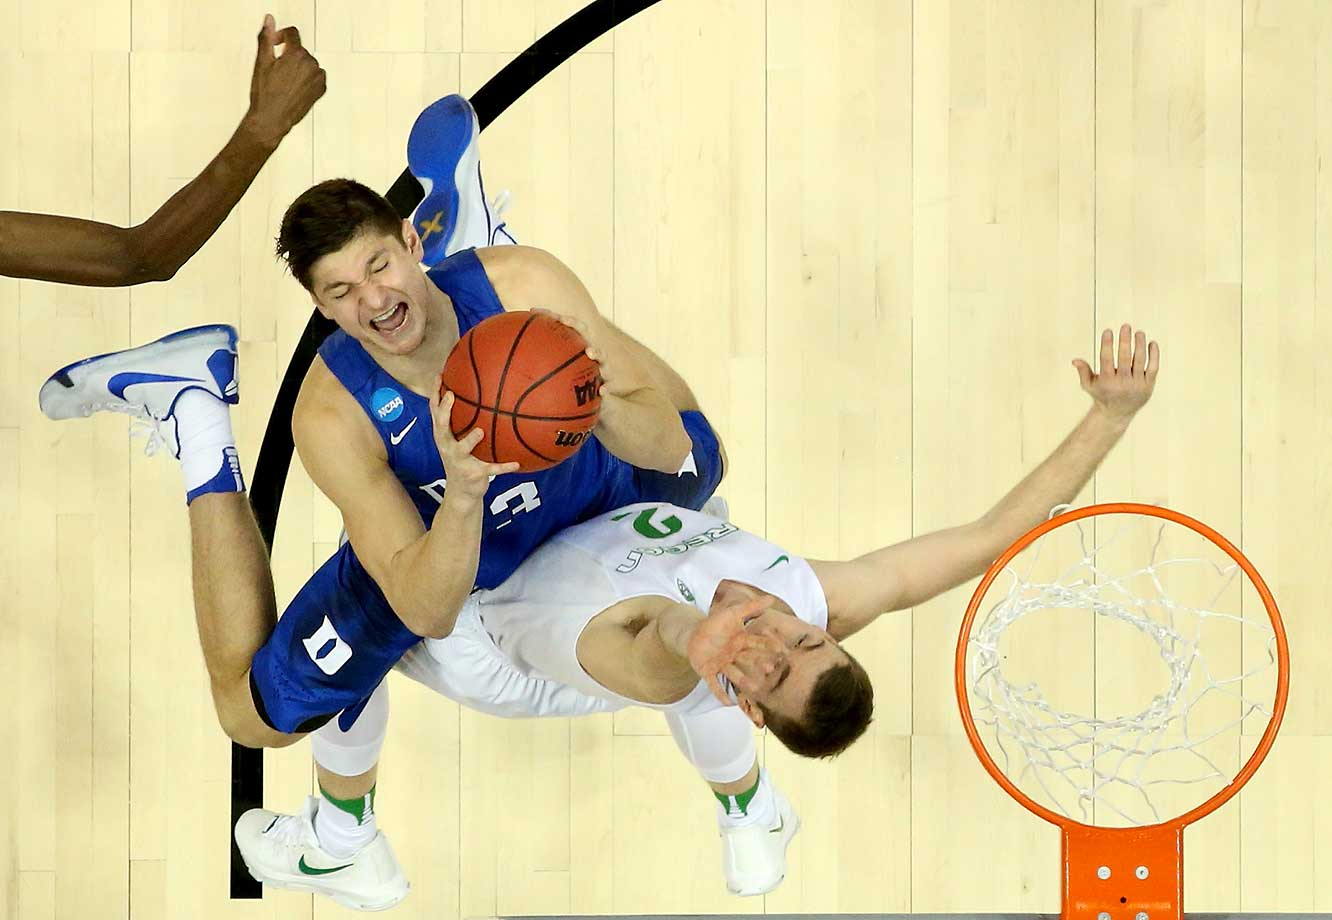 Grayson Allen of Duke goes up for a shot against Casey Benson of the Oregon Ducks.